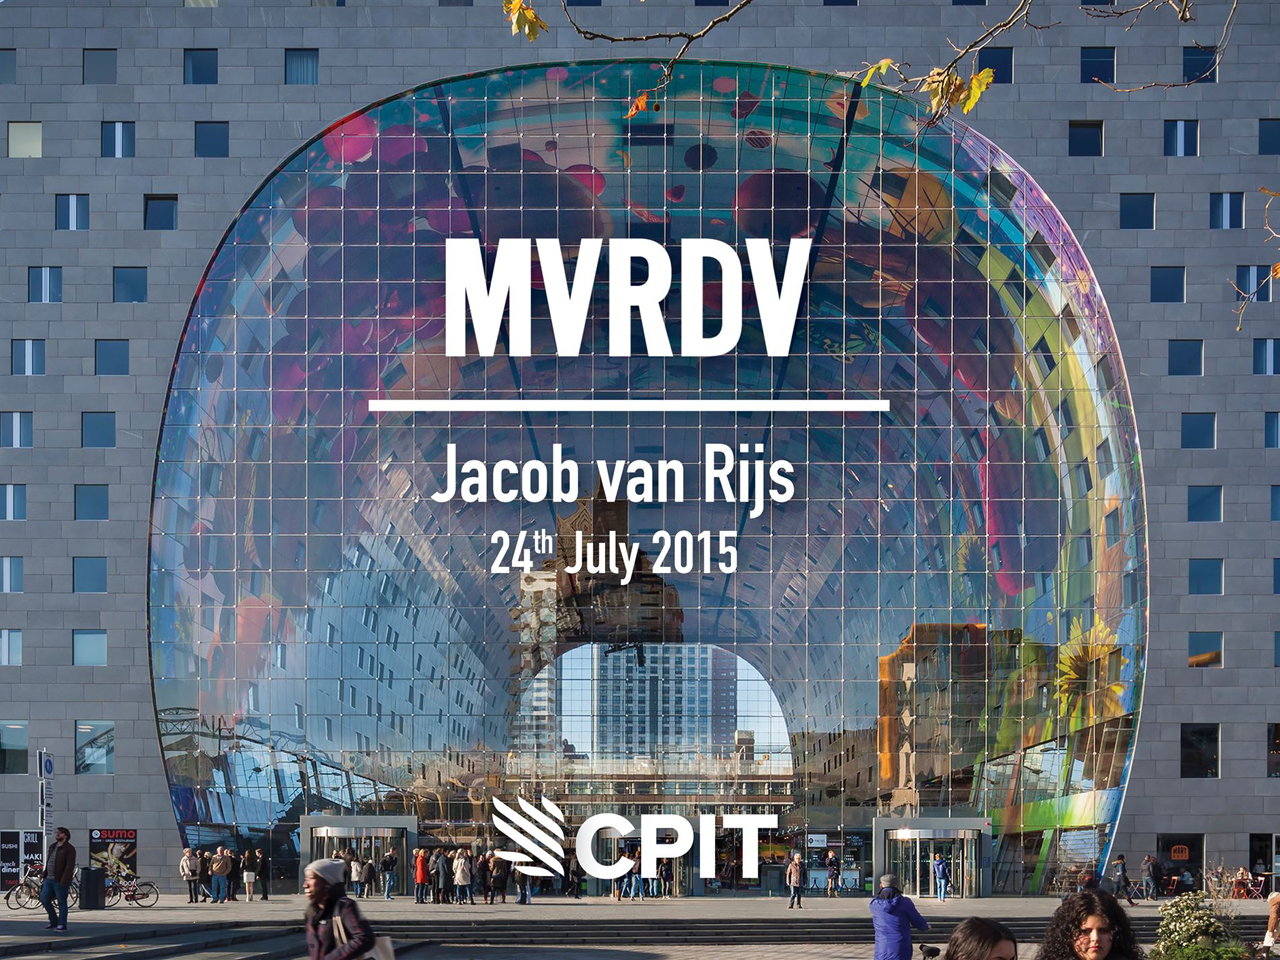 Jacob van Rijs to lecture in Christchurch, New Zealand, on July 24th